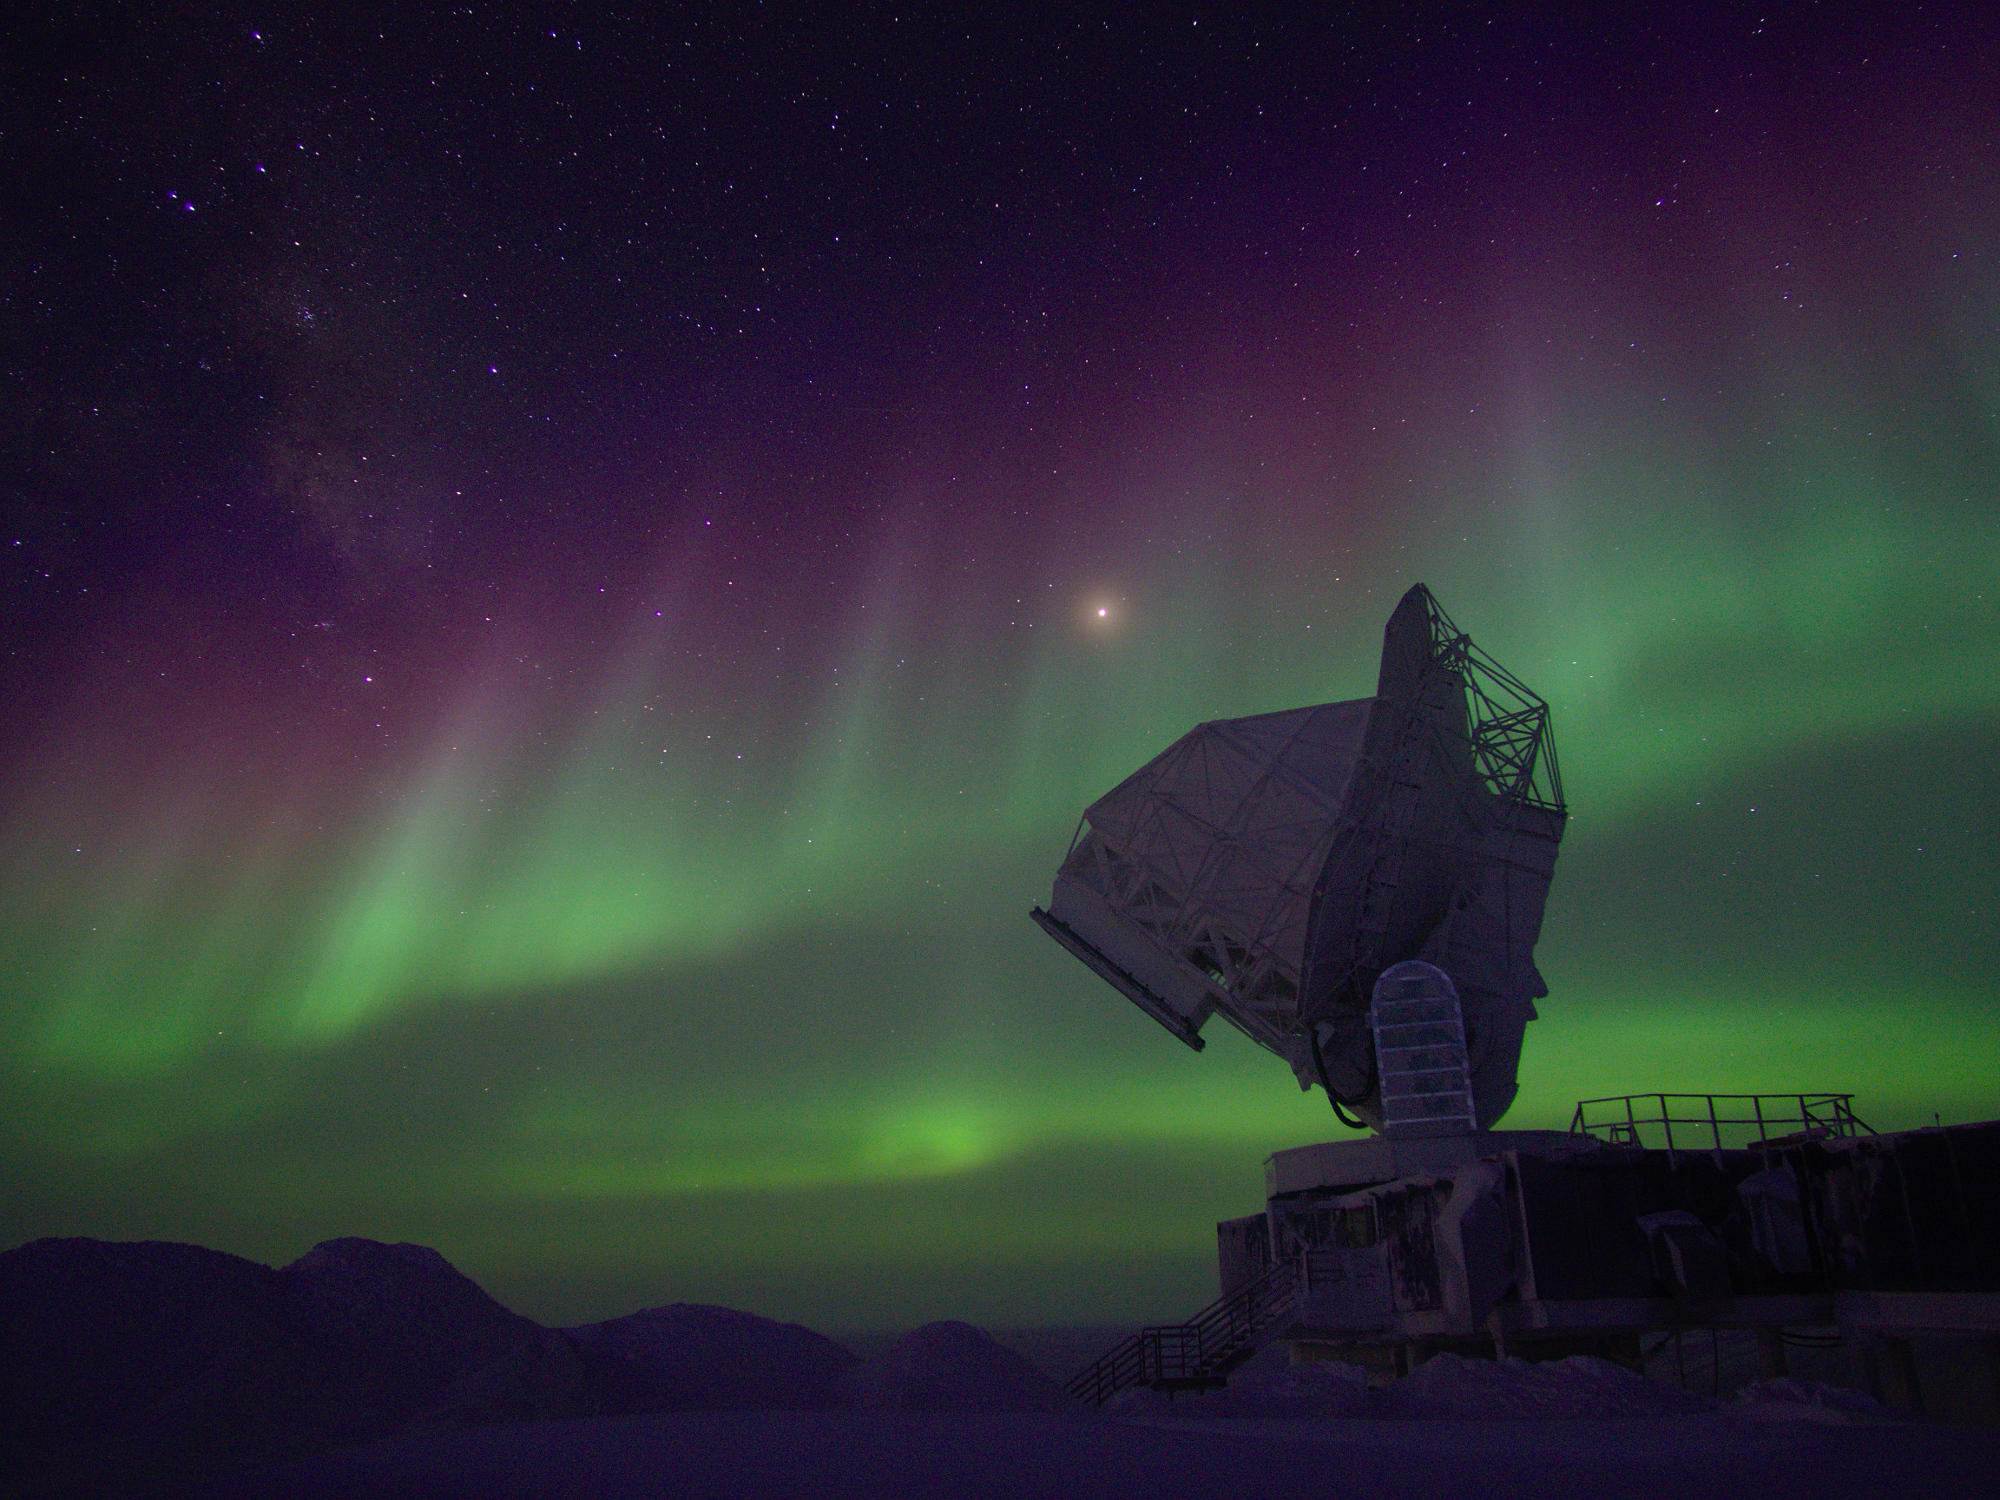 The South Pole Telescope observing under polar lights.